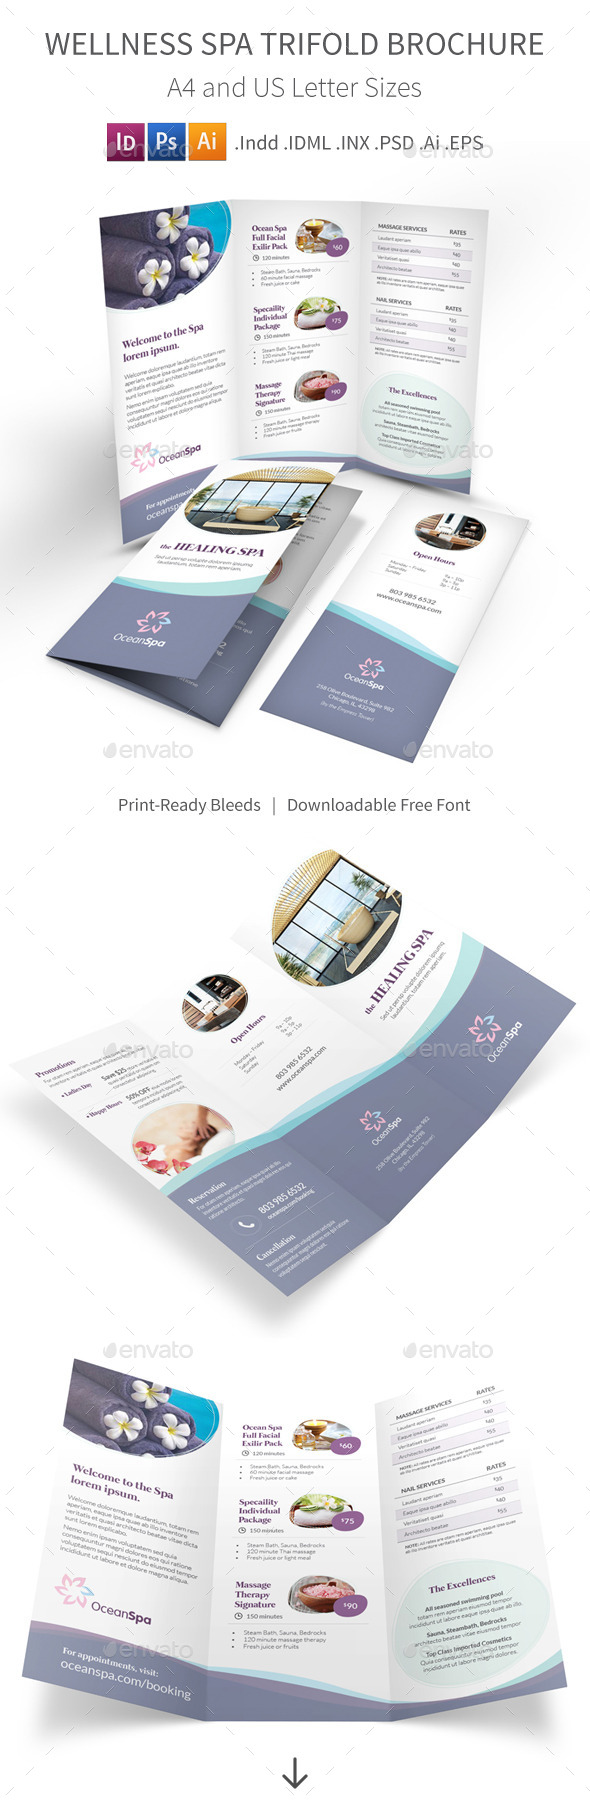 GraphicRiver Wellness Spa Trifold Brochure 9641063